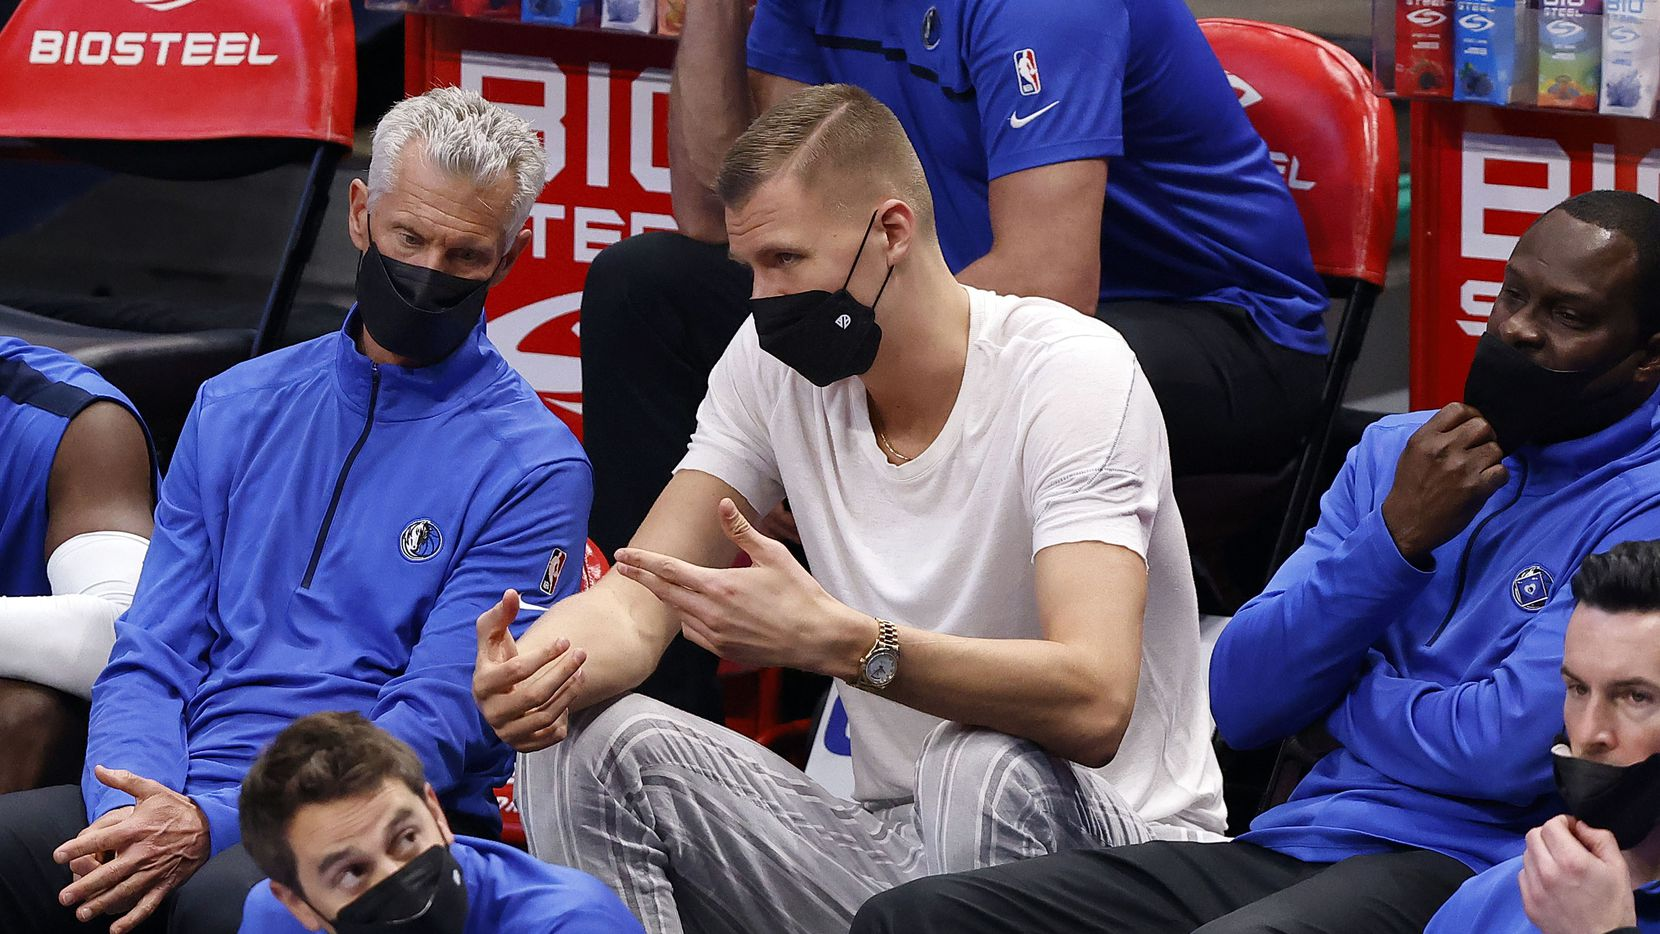 Injured Dallas Mavericks center Kristaps Porzingis (right) visits with coaches on the bench during their game with the Cleveland Cavaliers at the American Airlines Center in Dallas, Friday, May 7, 2021. The Mavericks blew out the Cavs, 110-90.